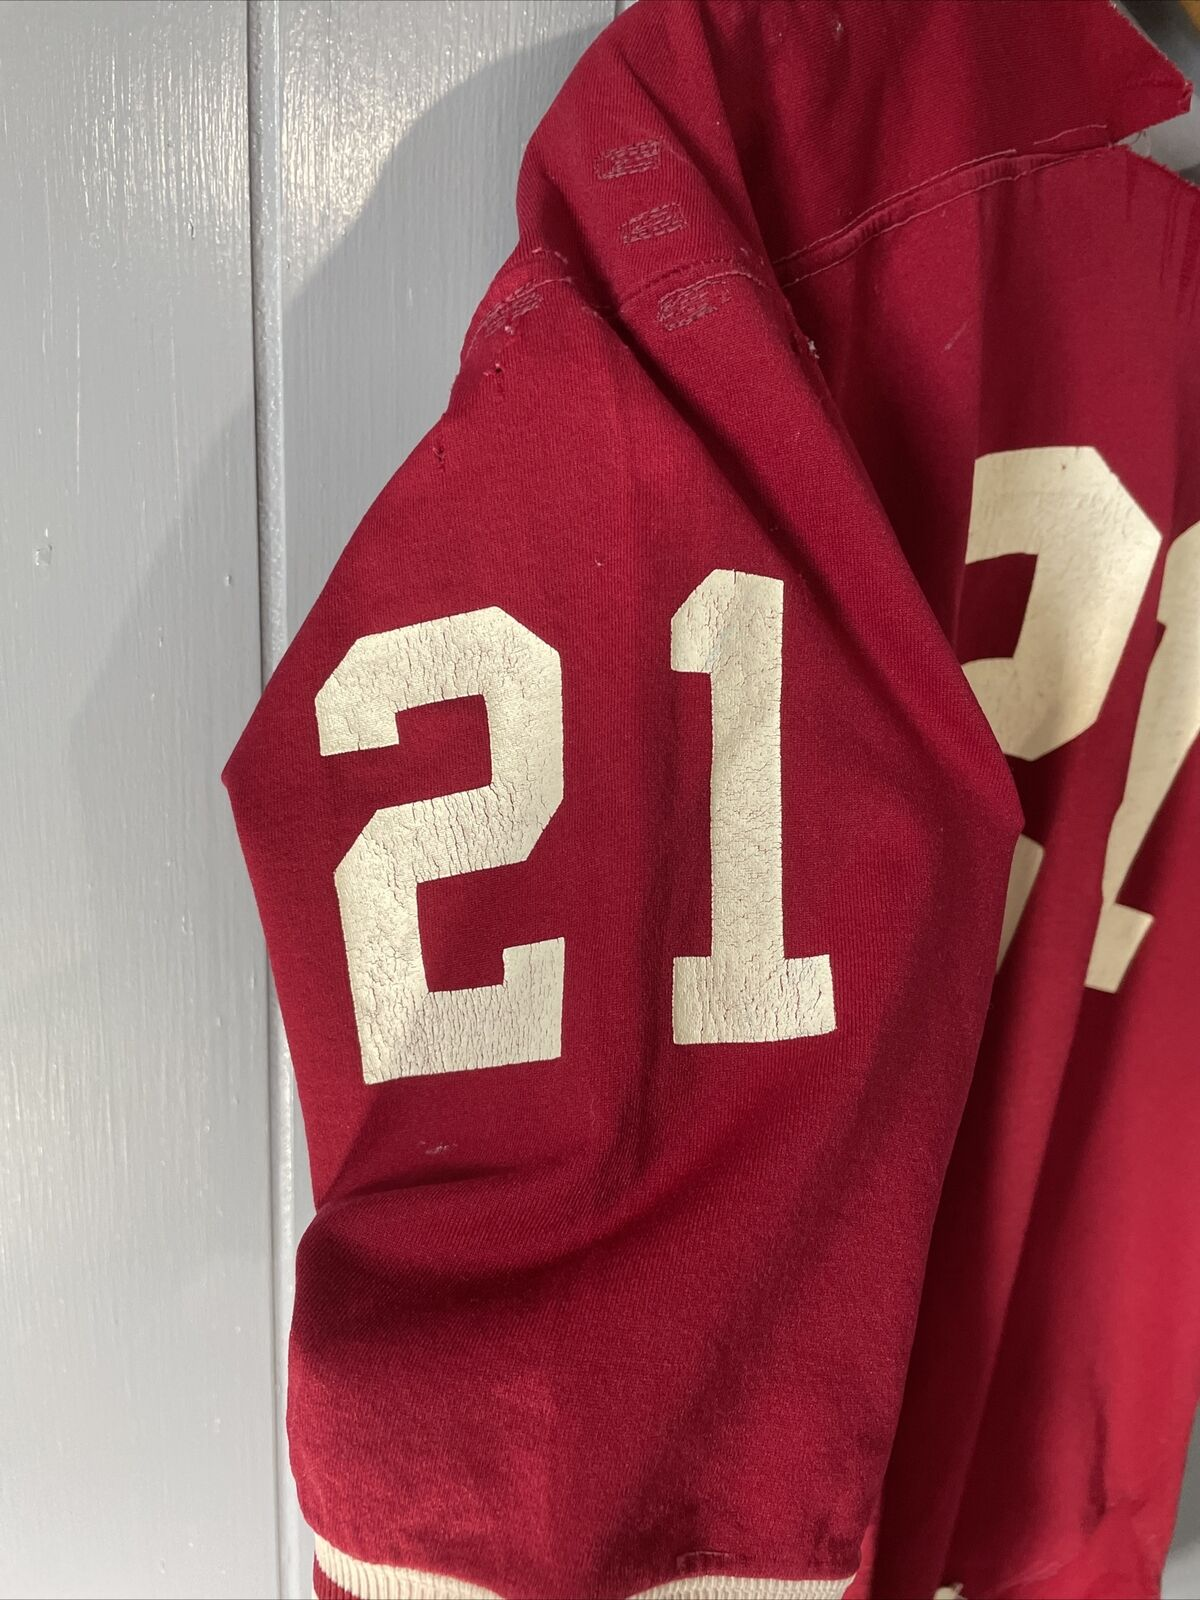 VTG 70's Russell Athletic Red Football Jersey #21… - image 6